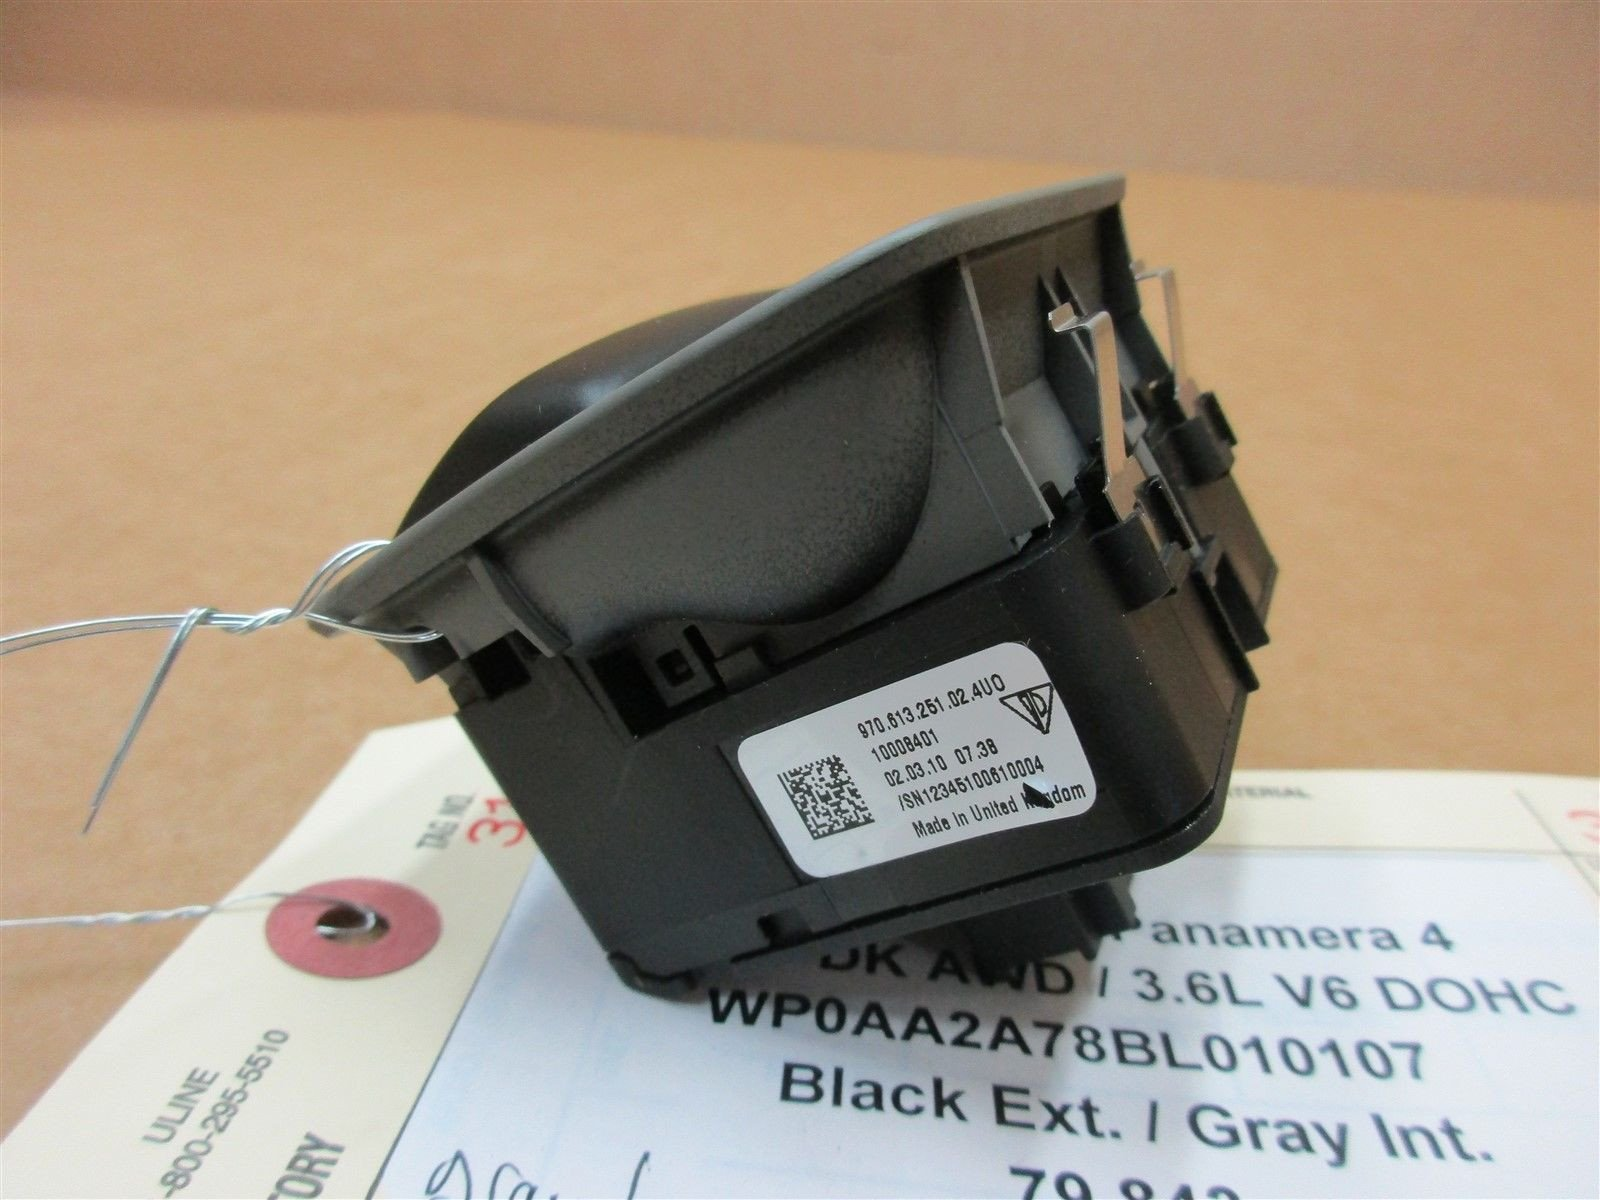 11 Panamera 4 AWD 970 Porsche Gray PARKING BRAKE SWITCH 97061325102 79,843